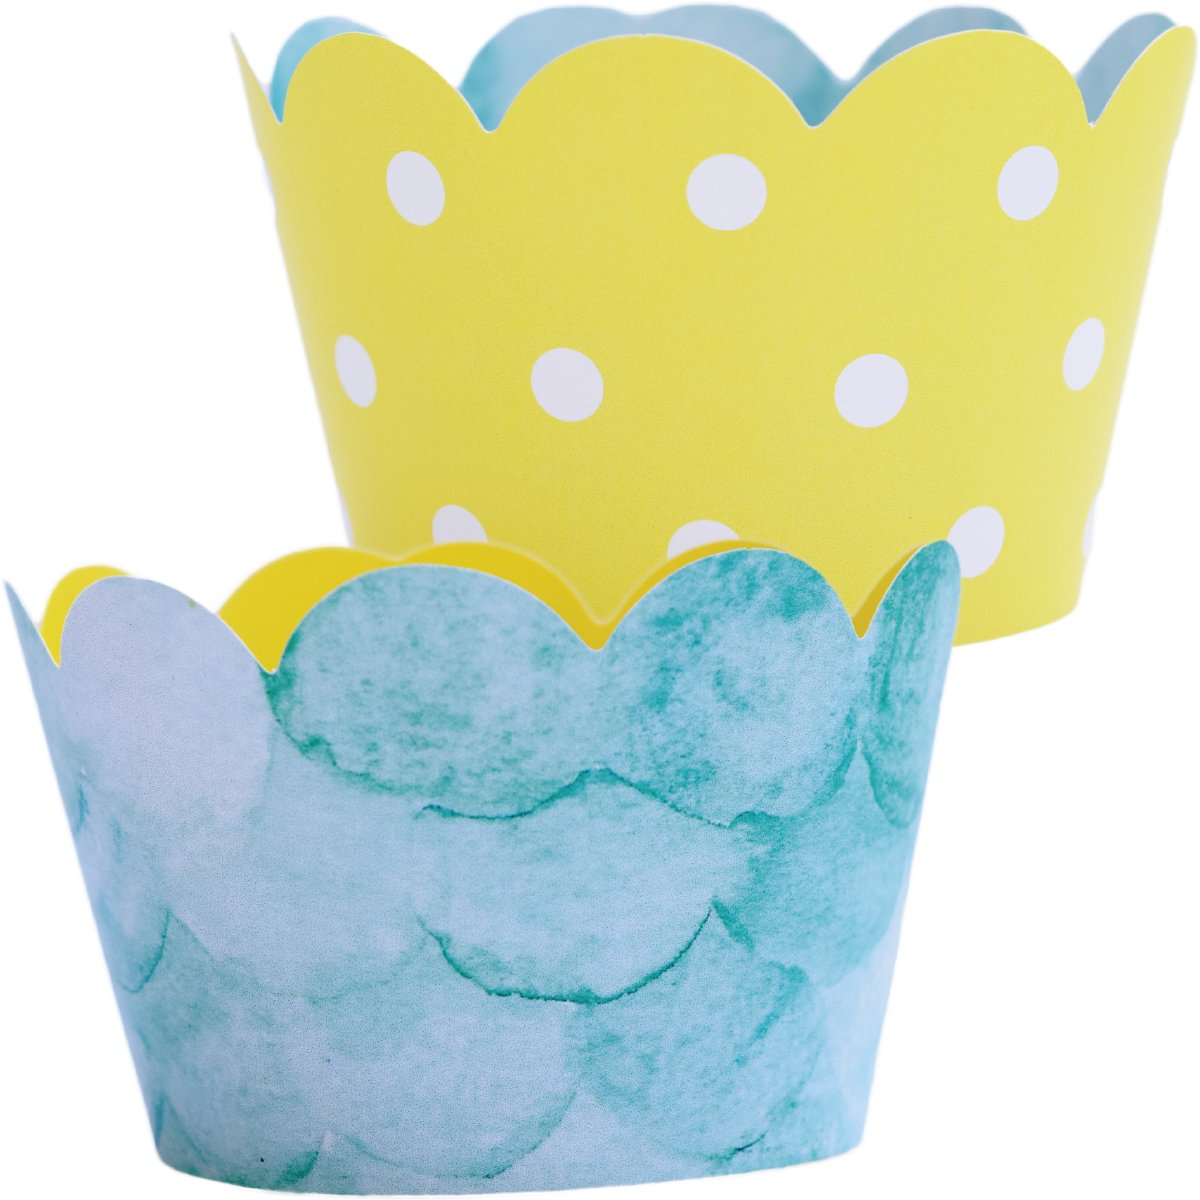 Baby Shower Shark Party Supplies - 36 Cupcake Wrappers | Reversible Yellow Polka-Dot, Water, You Are My Sunshine Party Decorations, Pool Party Supplies, The Big One Birthday Theme Fishing, Easter